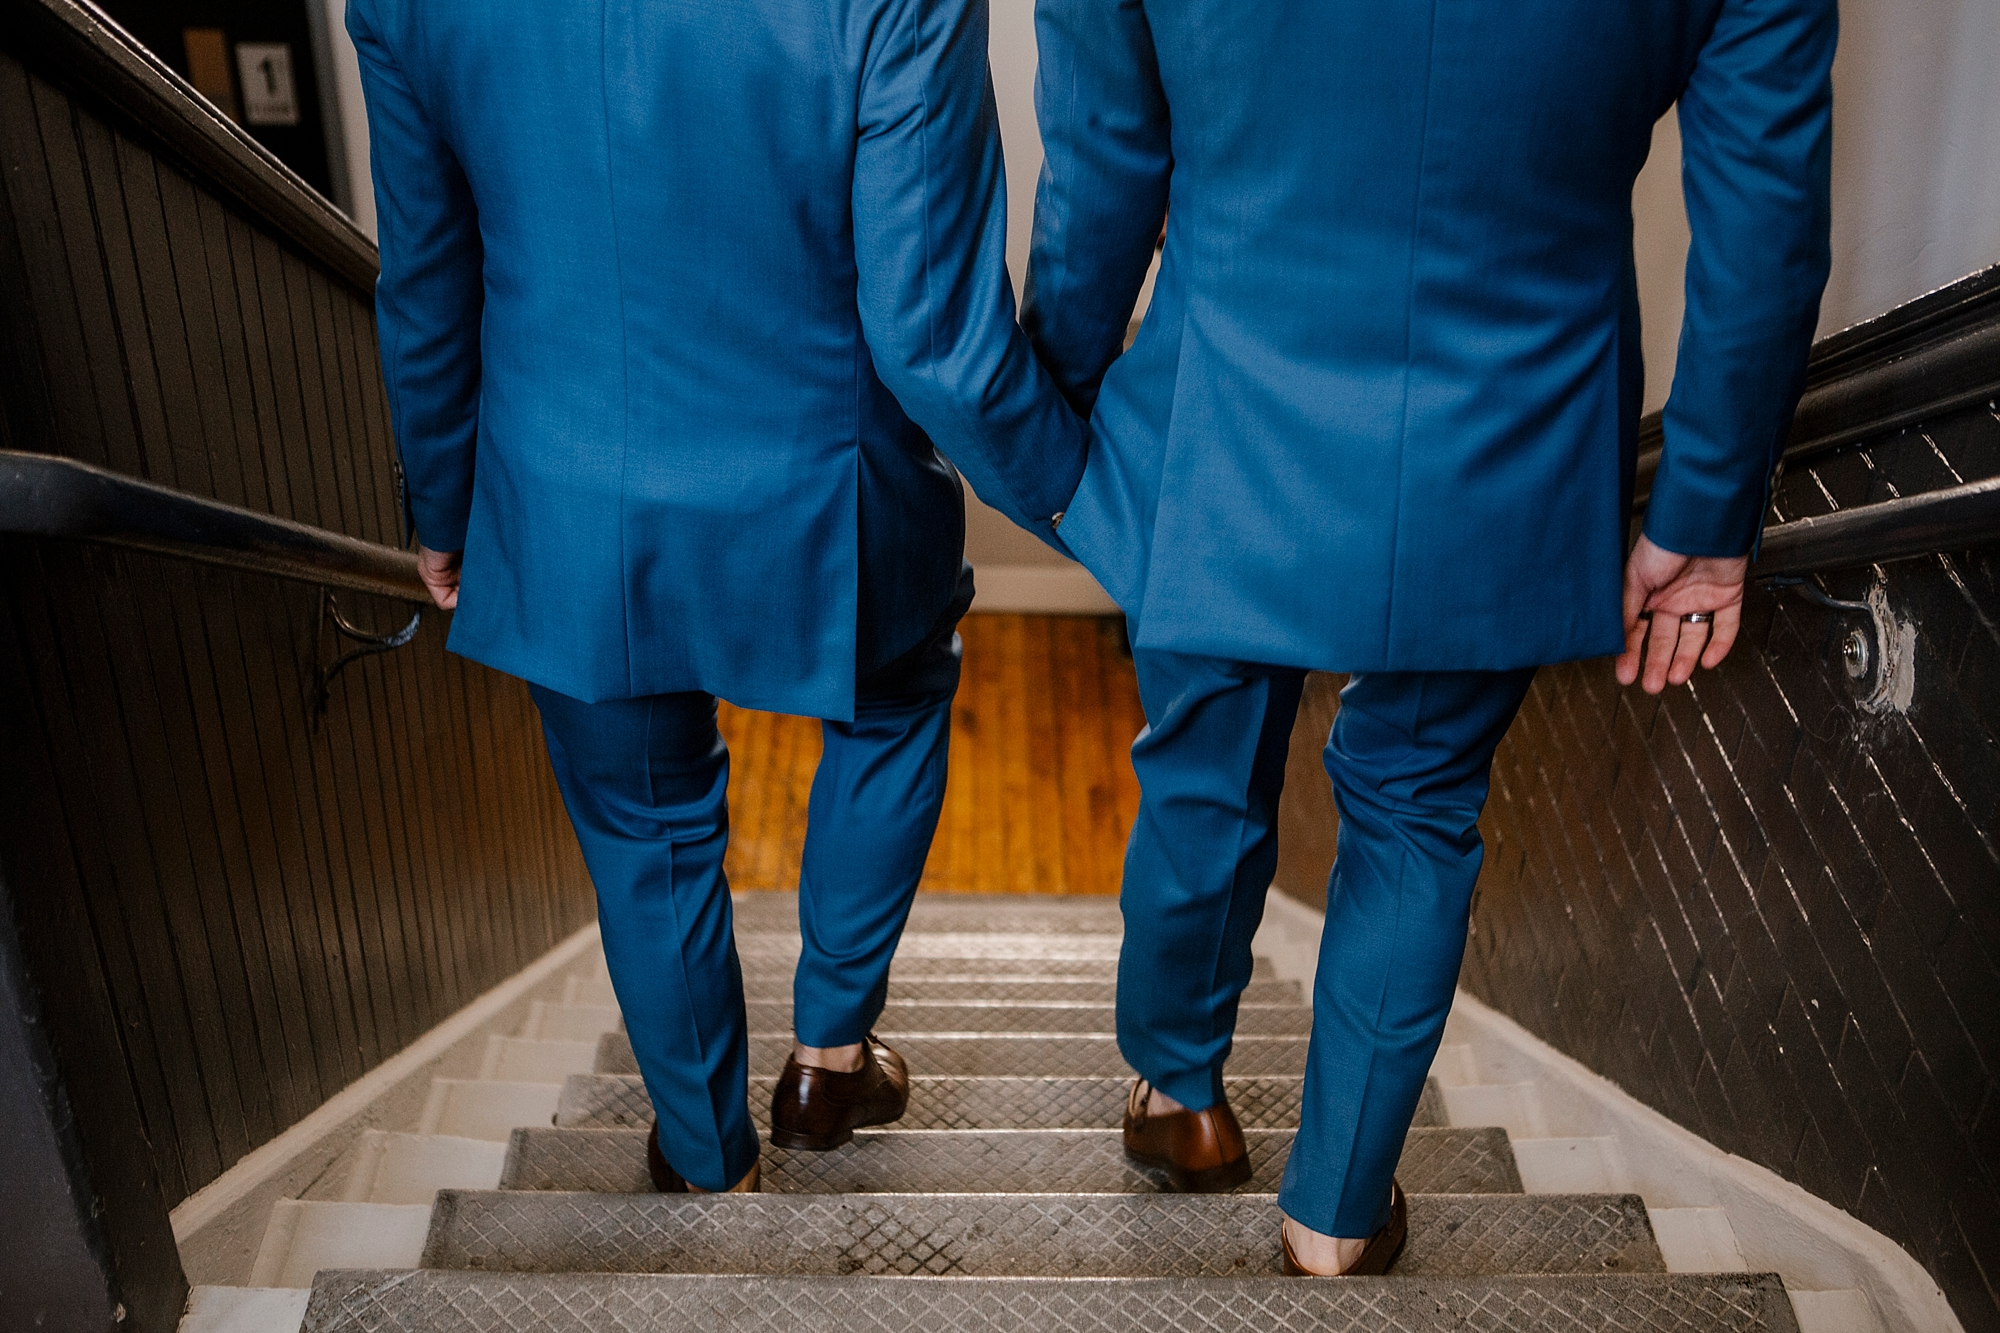 Joe_Mac_Creative_Philadelphia_Philly_LGBT_Gay_Engagement_Wedding_Photography__0118.jpg